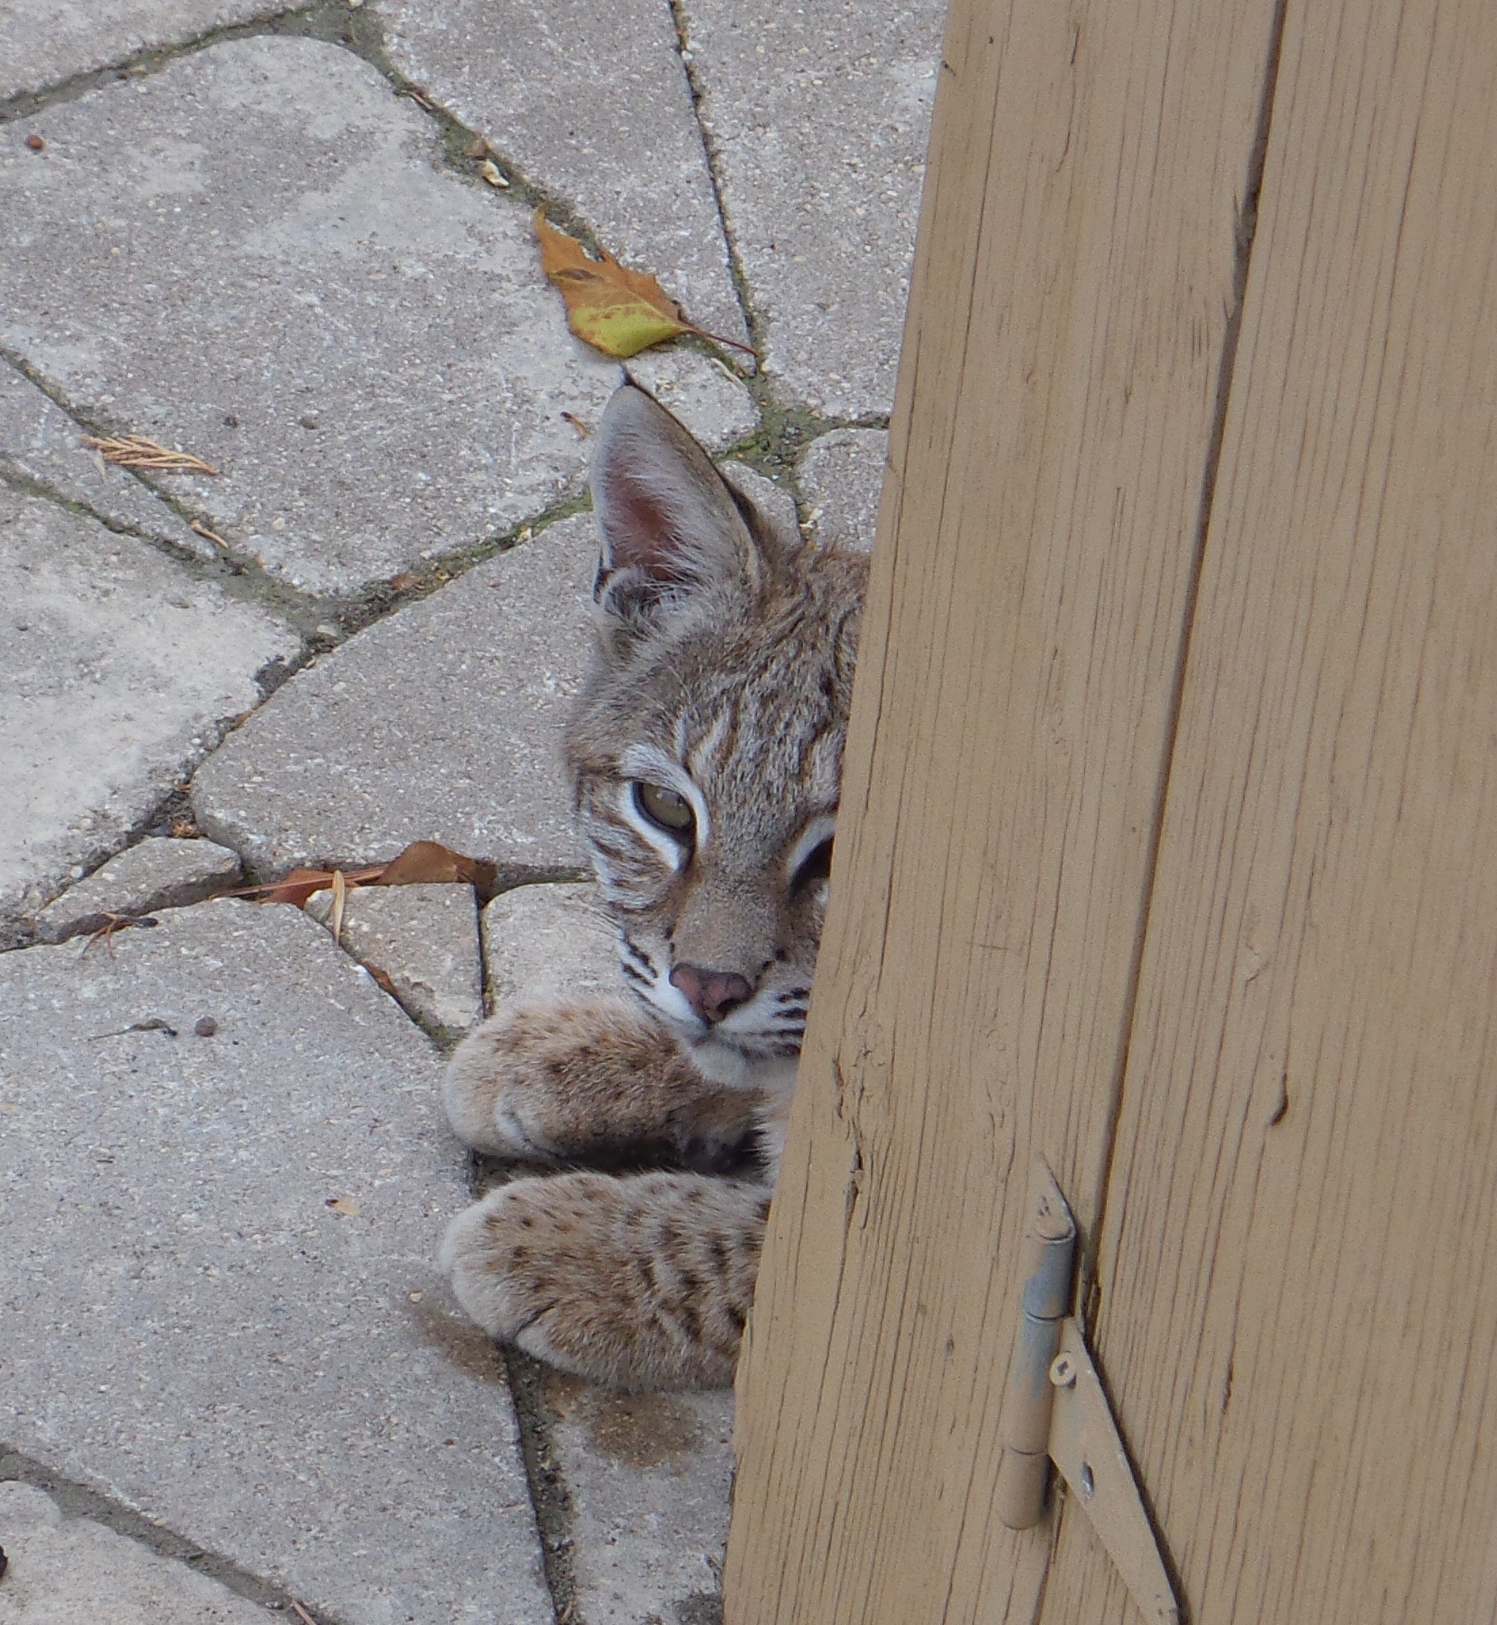 This little bobcat has been stalking squirrels and jack rabbits in a city park in Calgary.